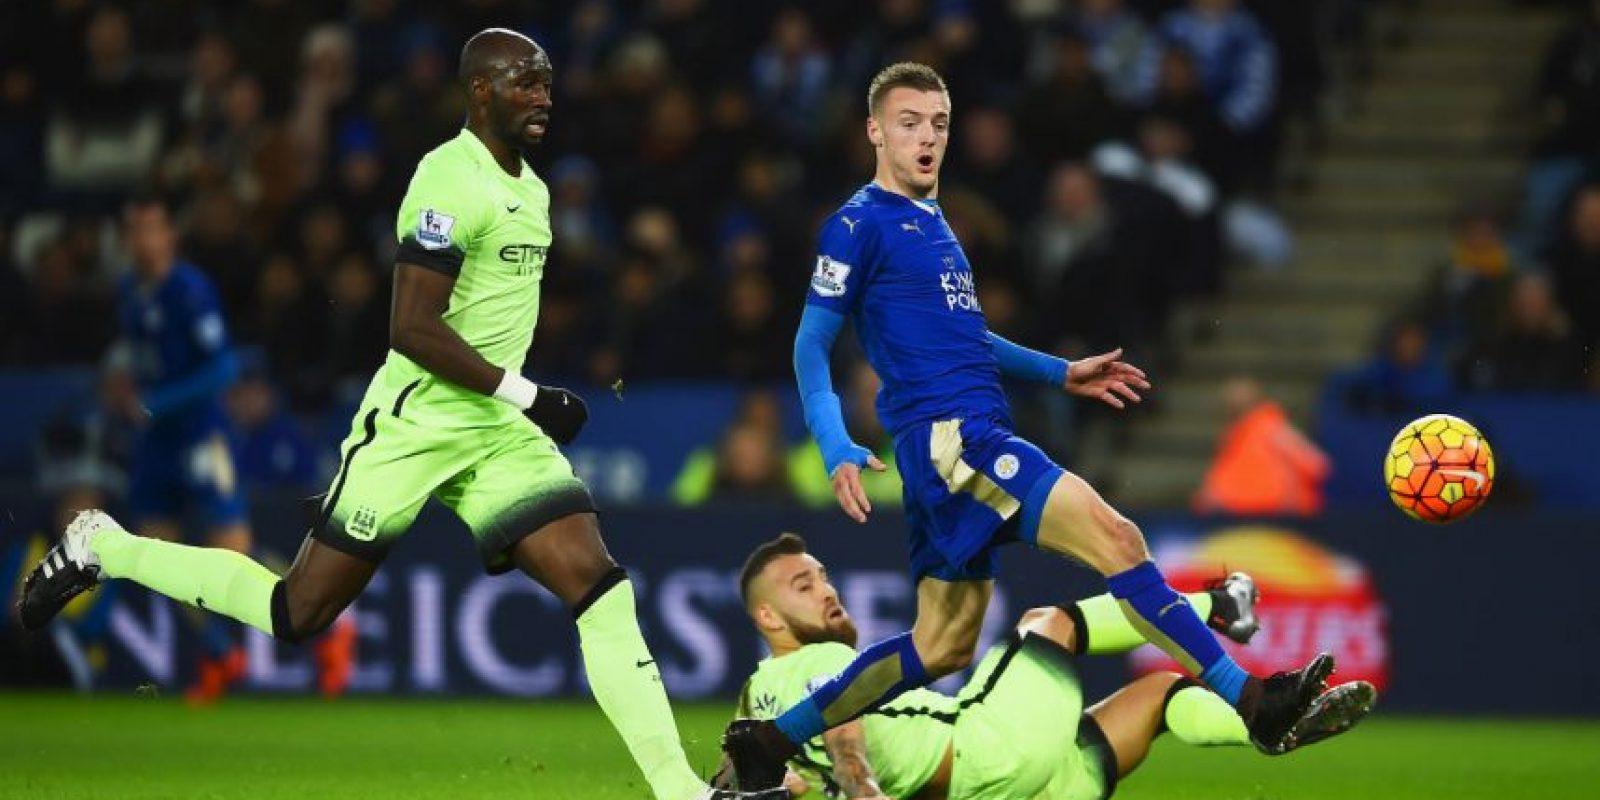 Manchester City vs. Leicester City Foto:Getty Images